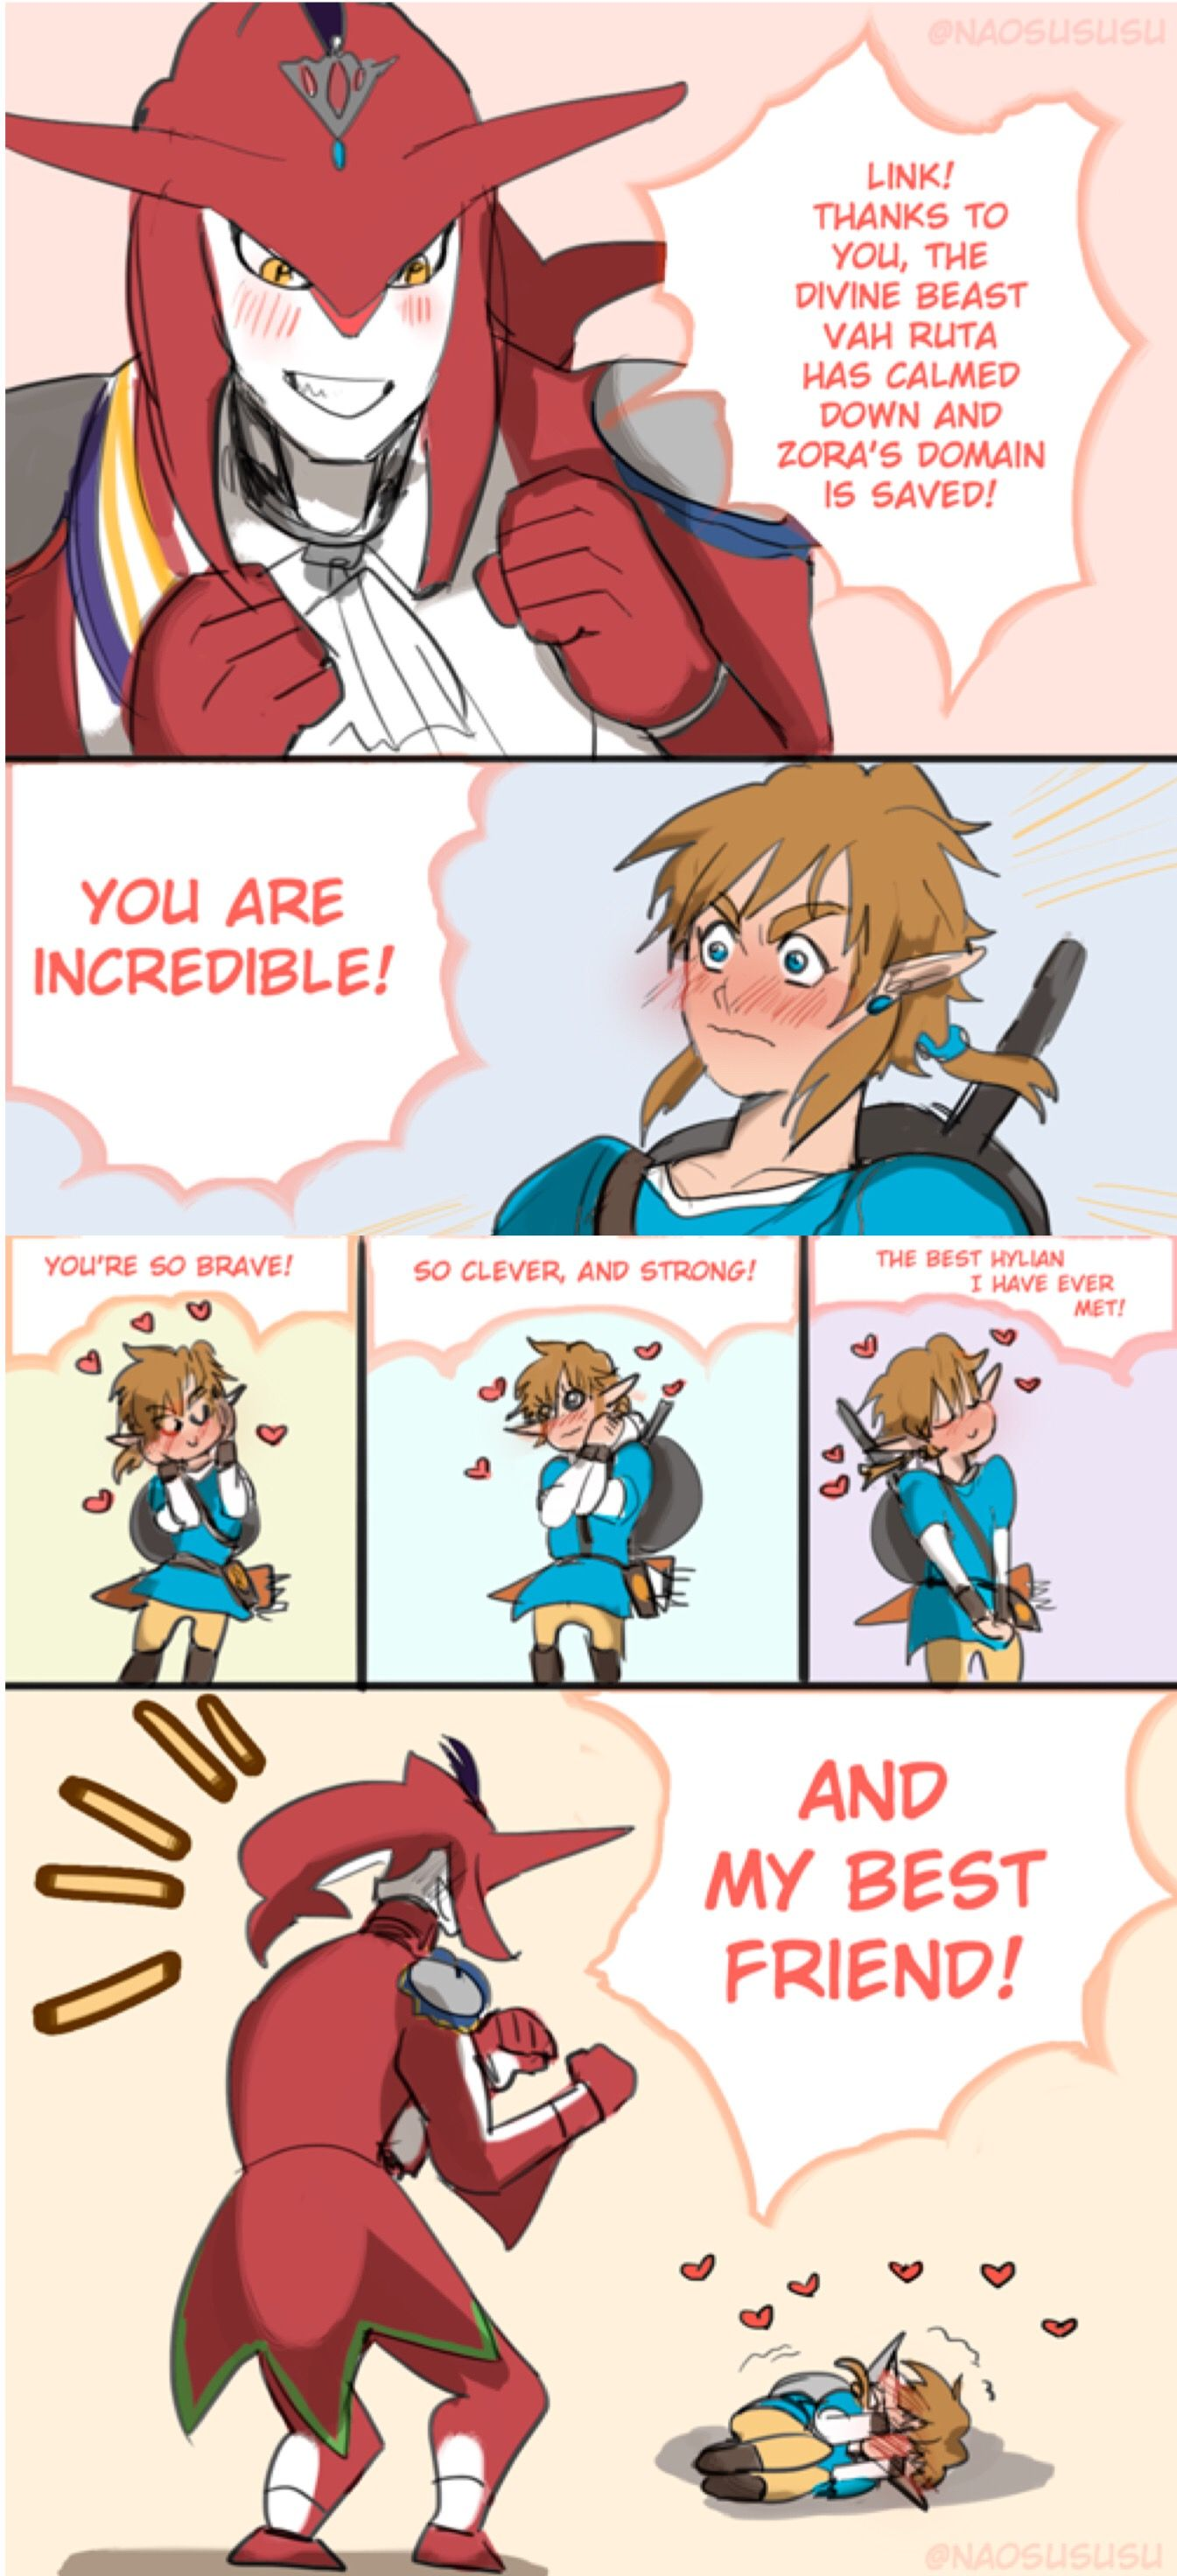 Legend of zelda link gay hentai comics